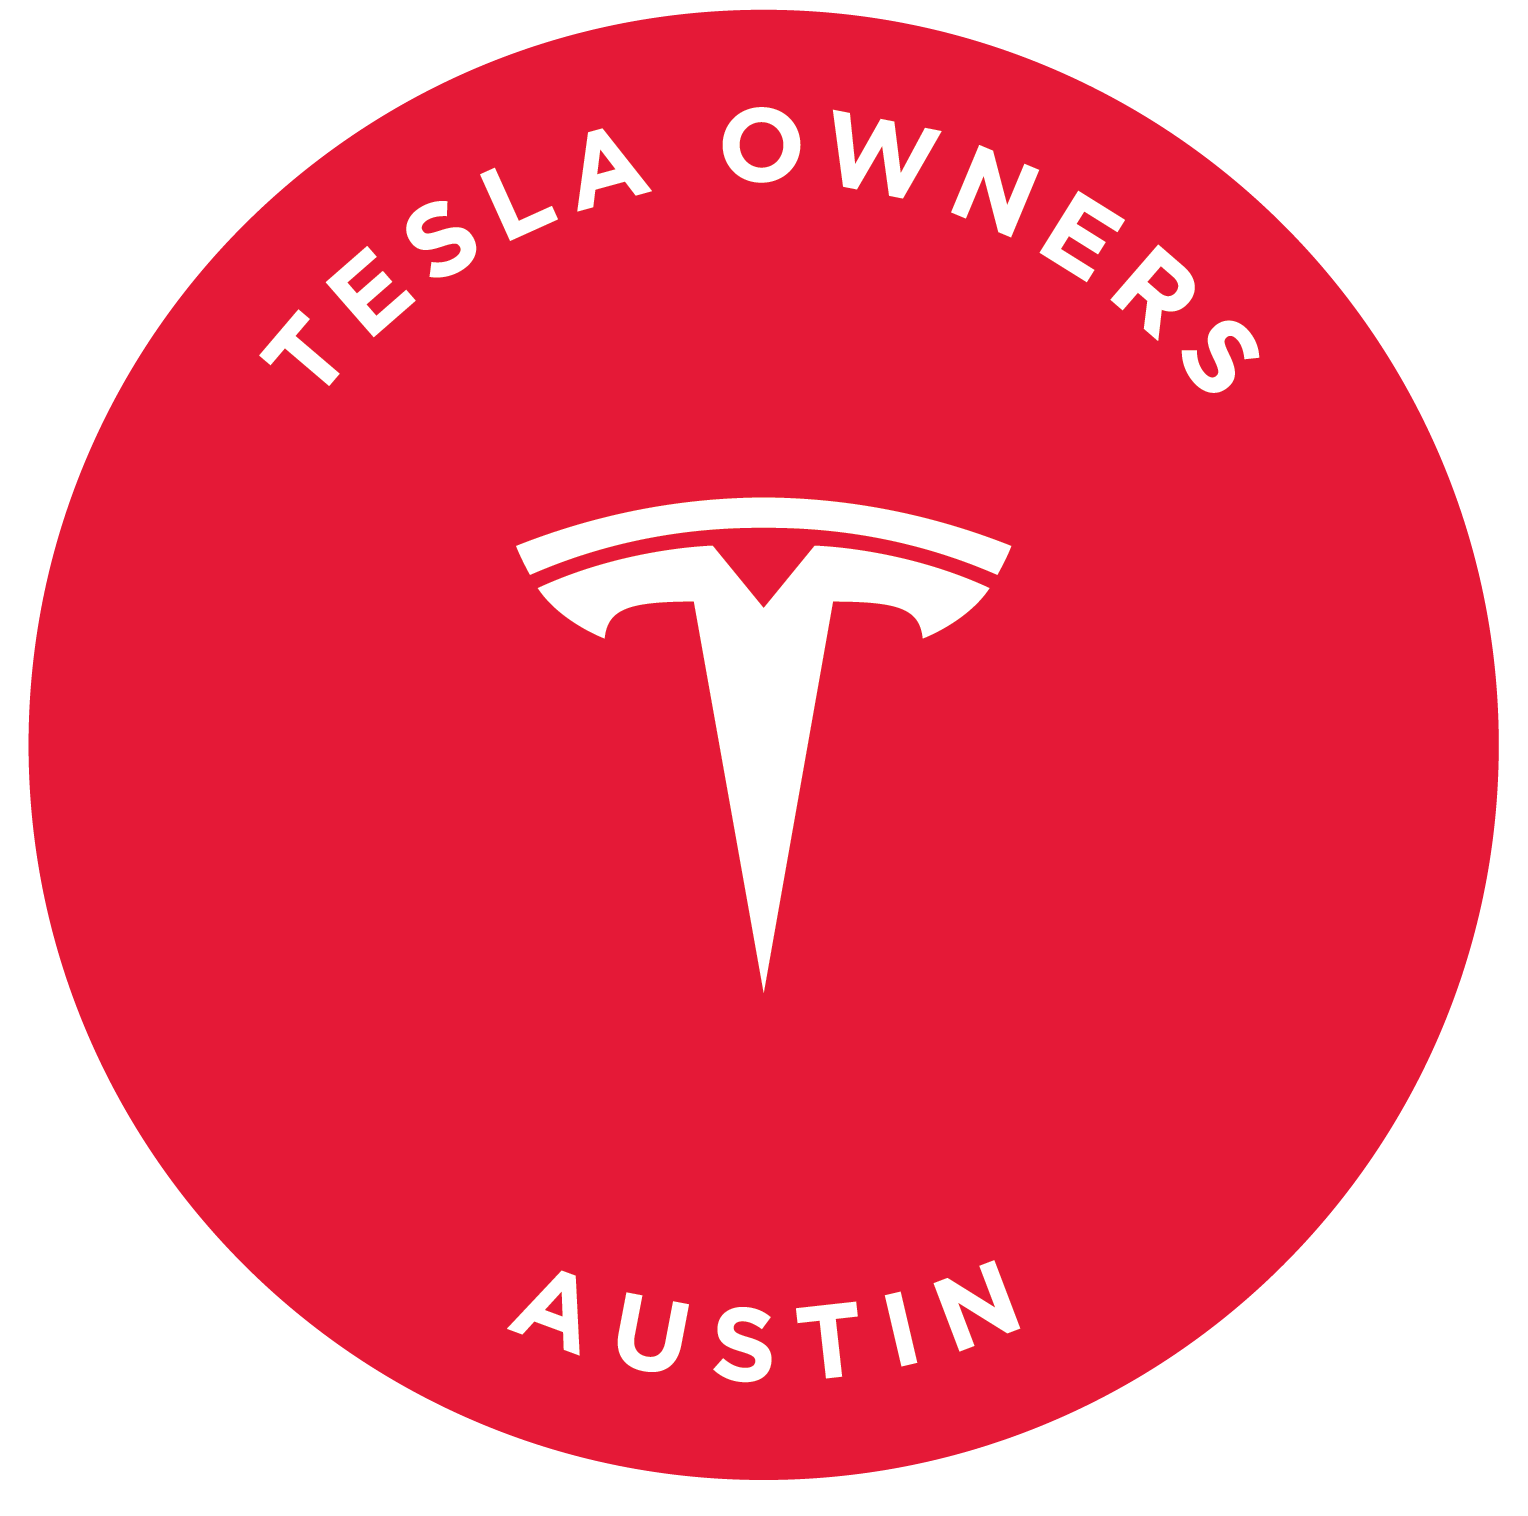 Tesla Owners Club of Austin